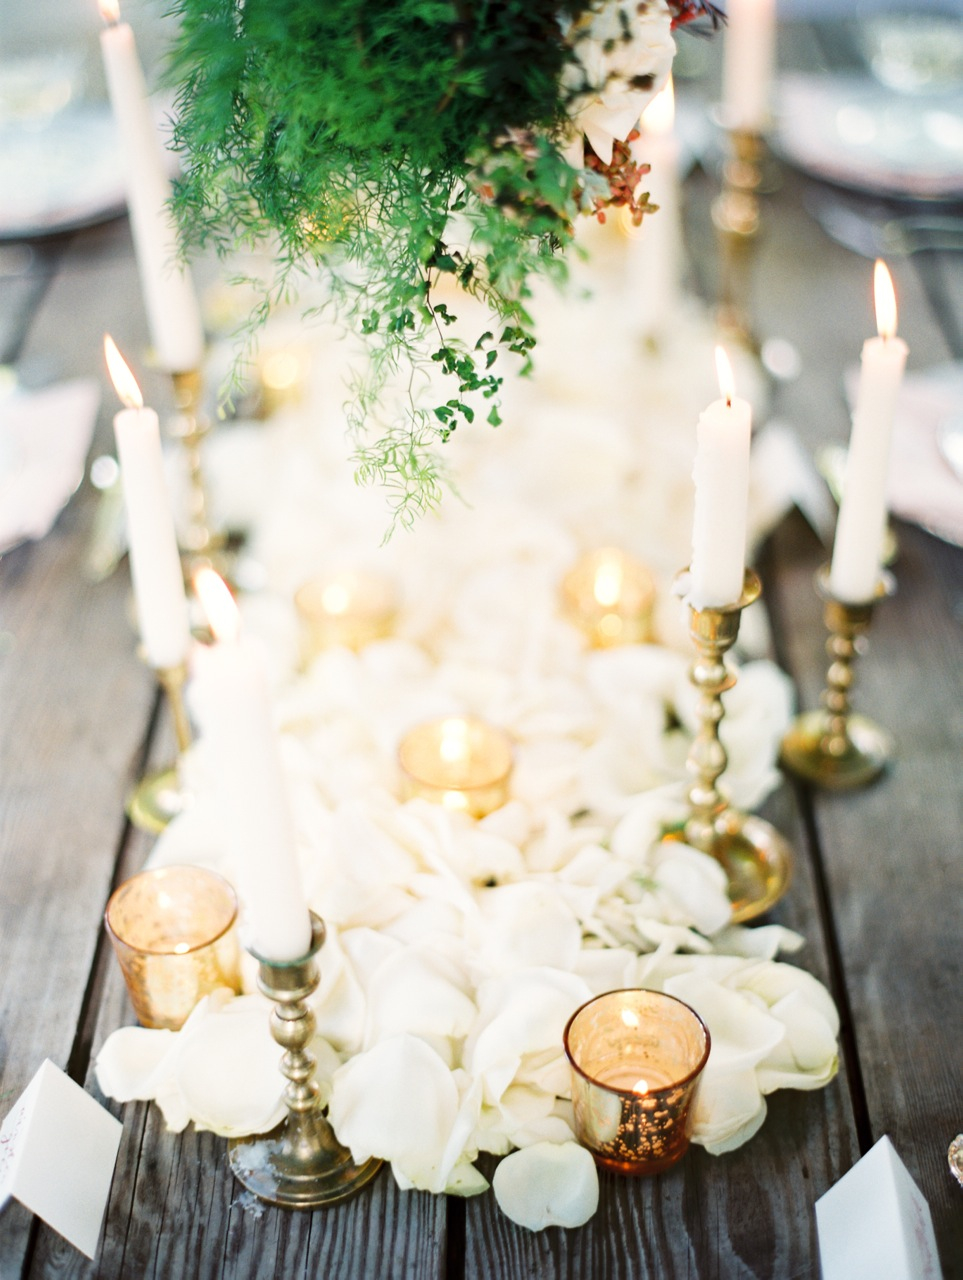 West Coast Decorating Style A Collection Of Brass Candlesticks And Gold Votives Illuminated